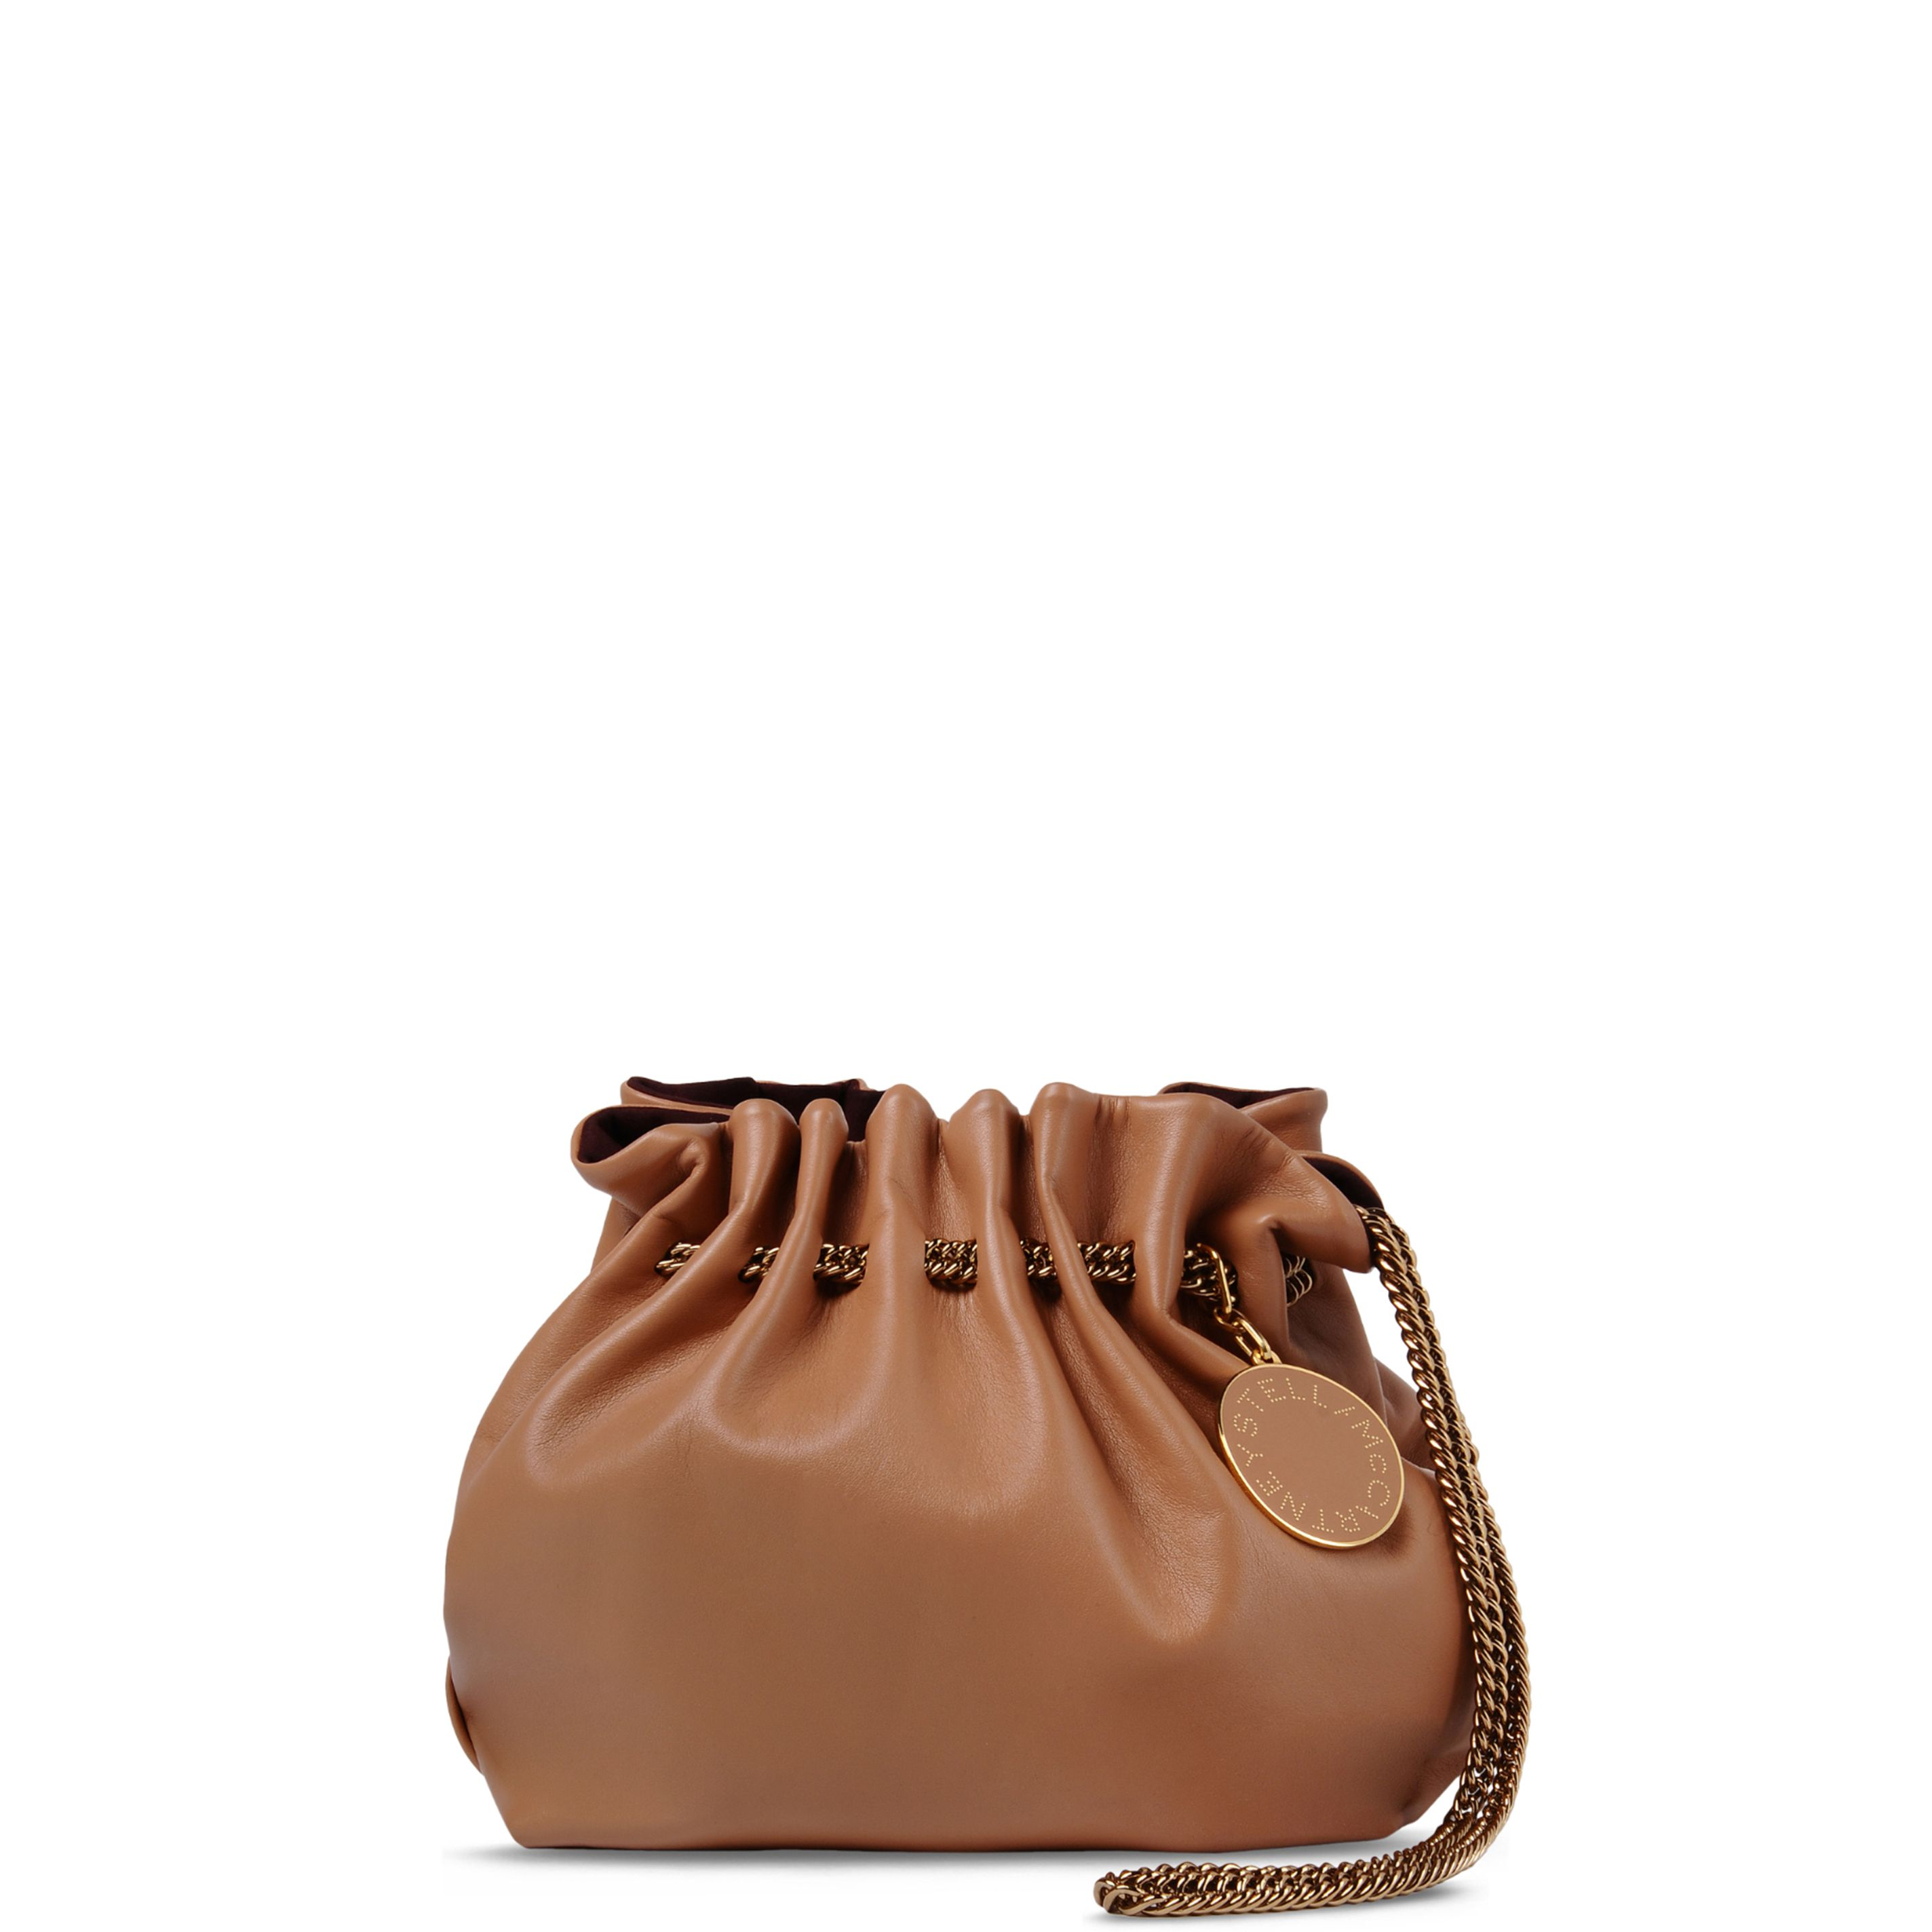 Stella McCartney - Black Falabella Shaggy Deer Backpack - Shop at